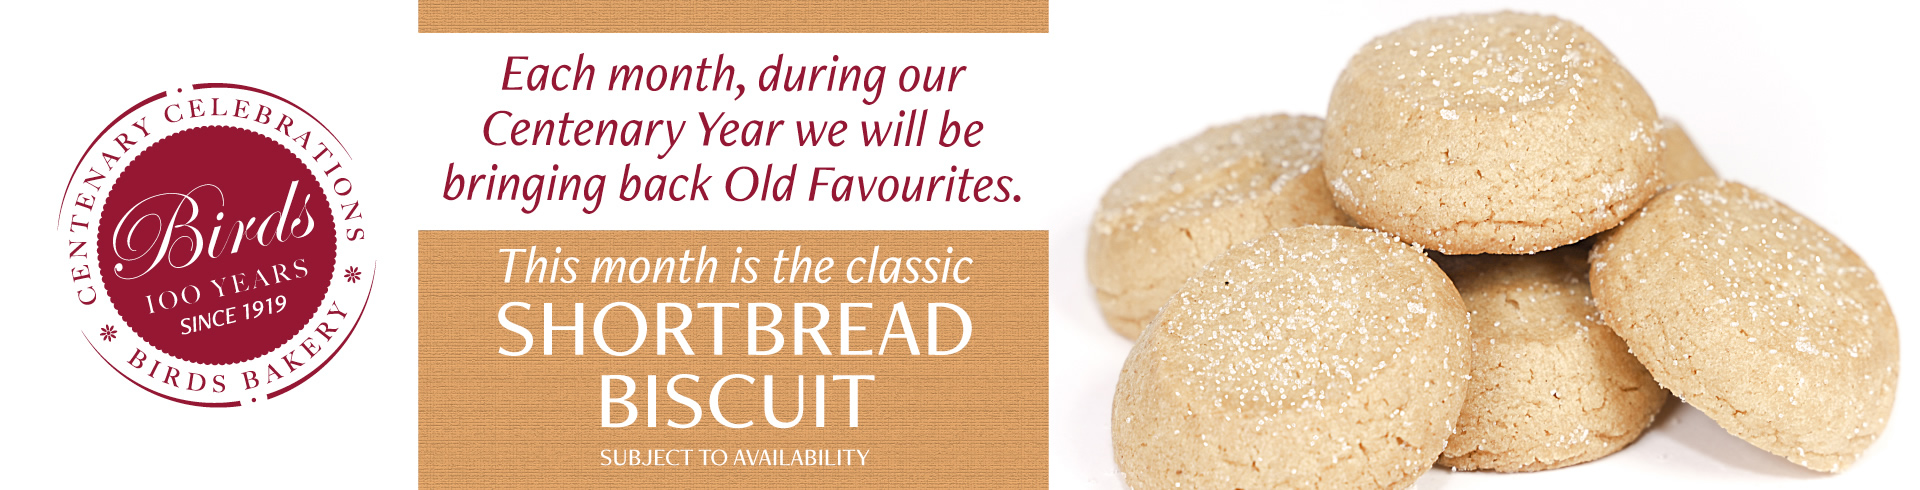 Each month, during our Centenary Year we will be bringing back Old Favourites. This month is the classic Shortbread Biscuit, subject to availability